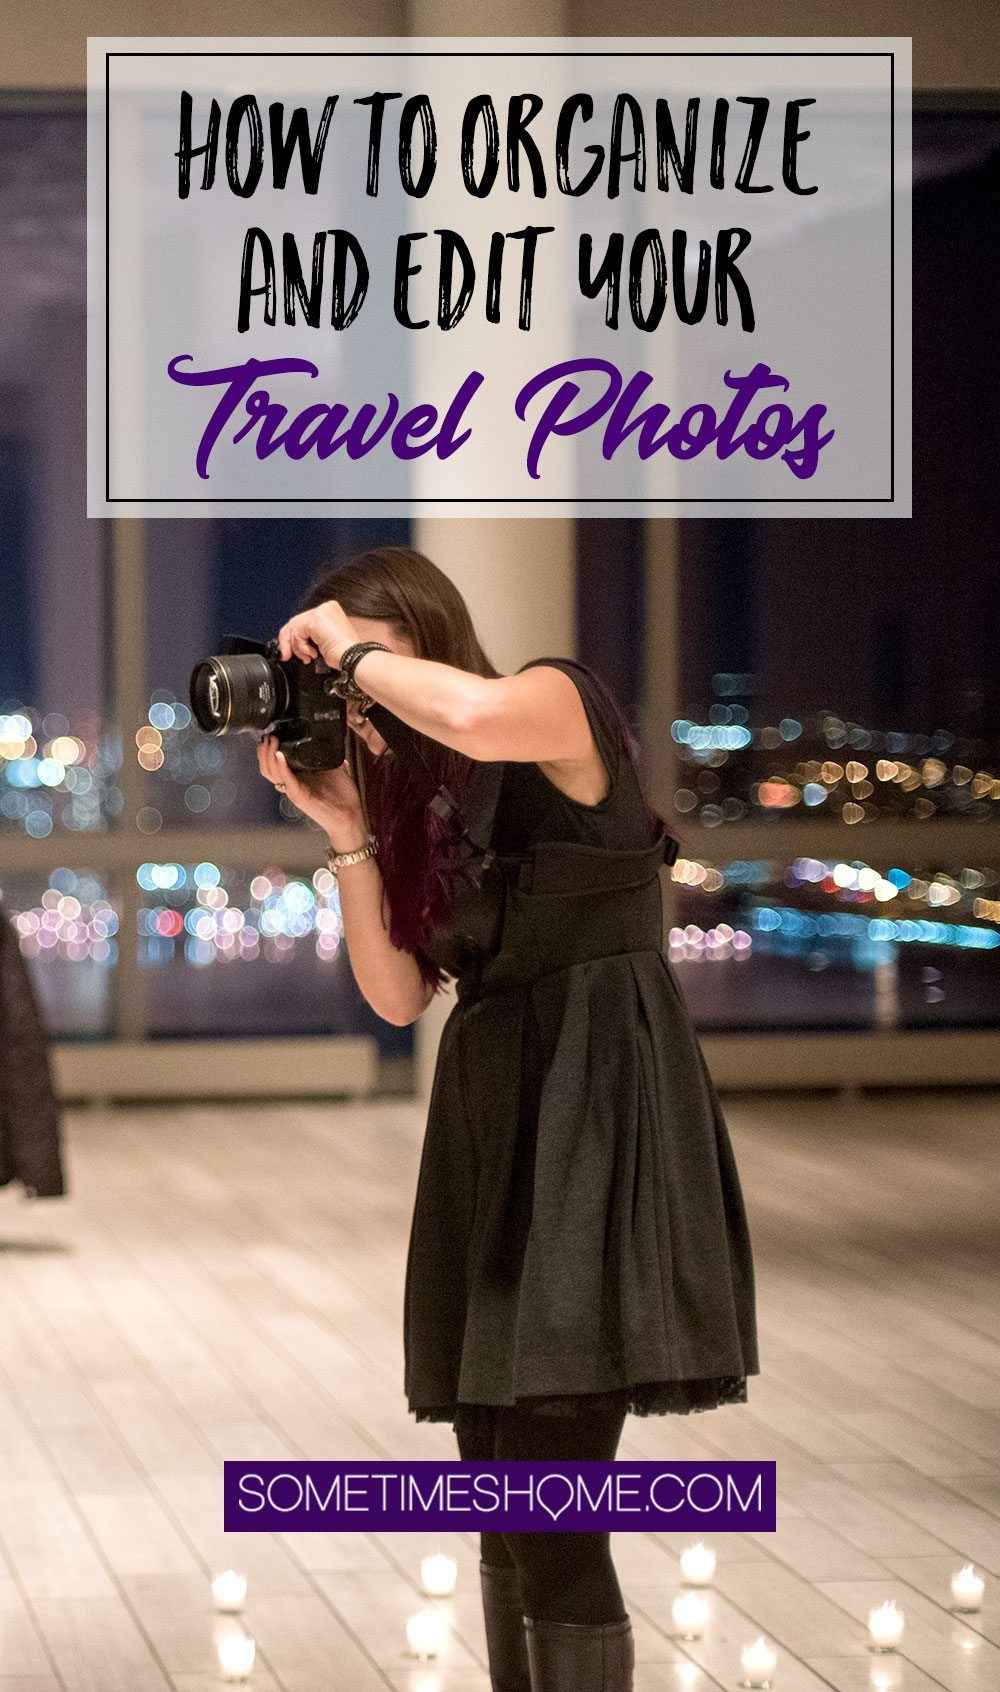 How to Organize and Edit Travel Photography Photos: Part 1. Posted on Sometimes Home travel blog with professional processes by Mikkel Paige.